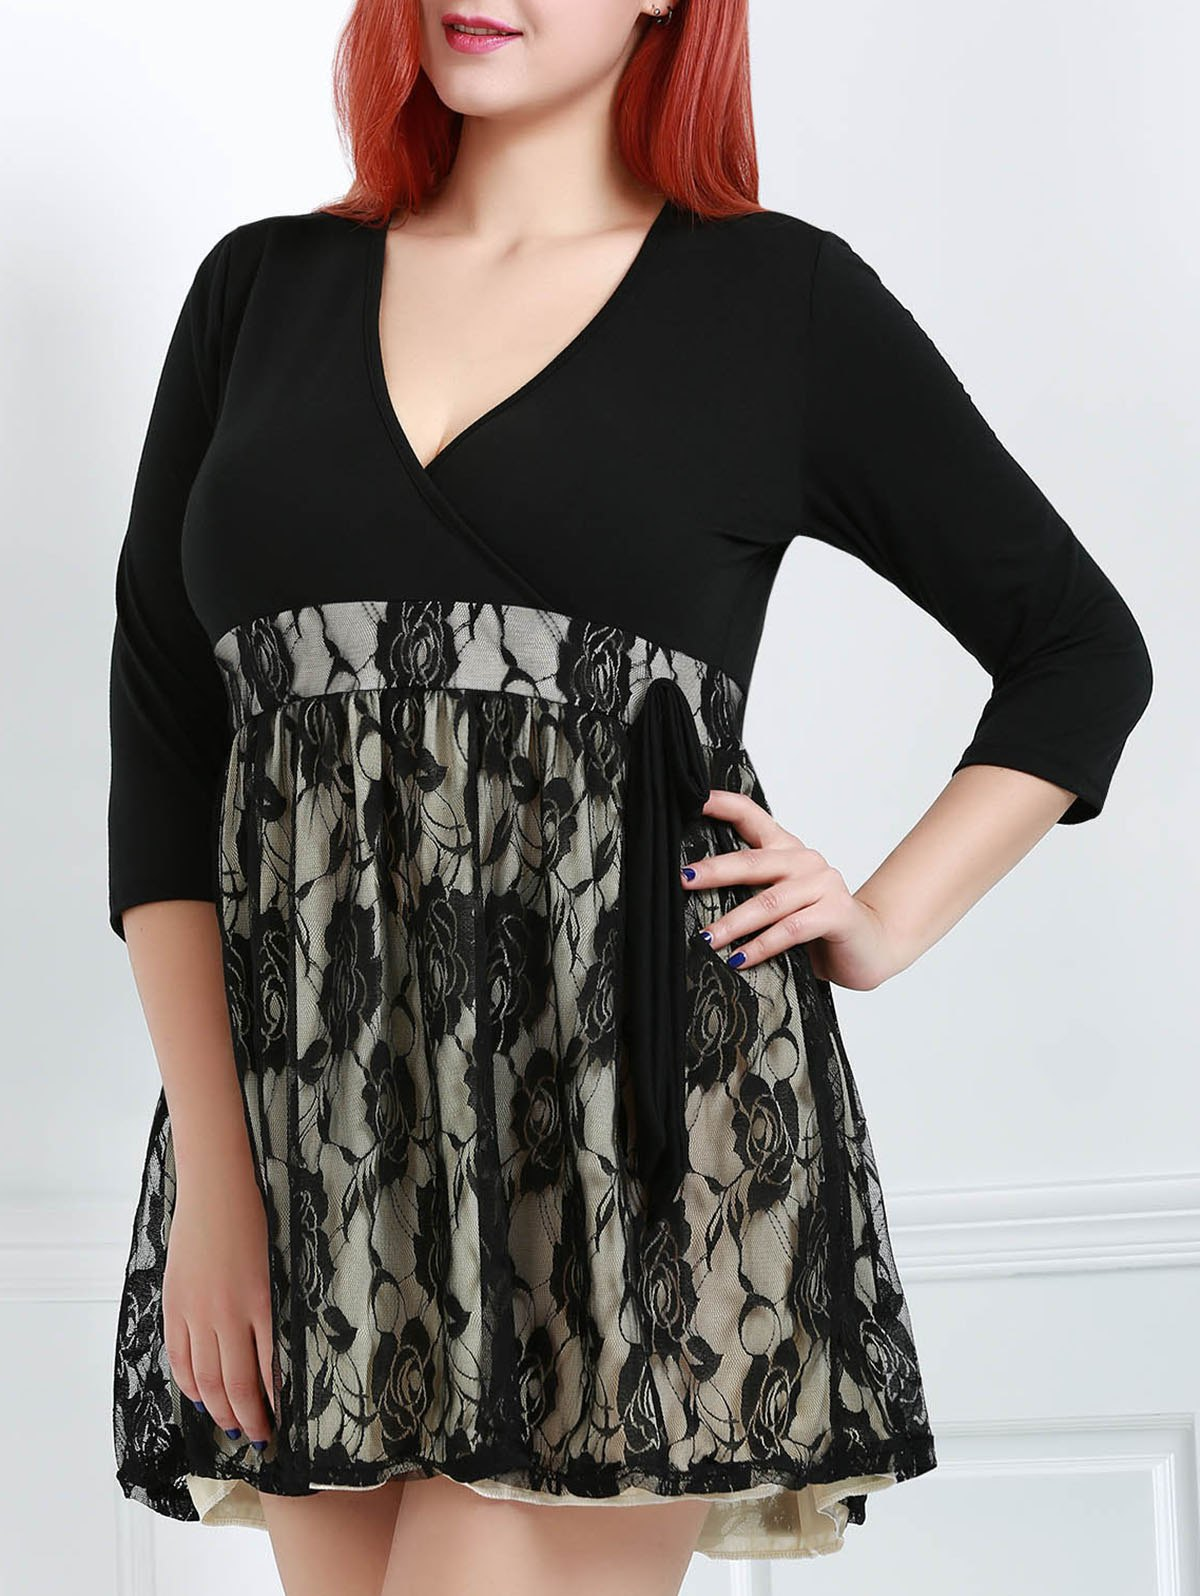 V-Neck 3/4 Sleeve Lace Plus Size Dress For Women - BLACK 2XL